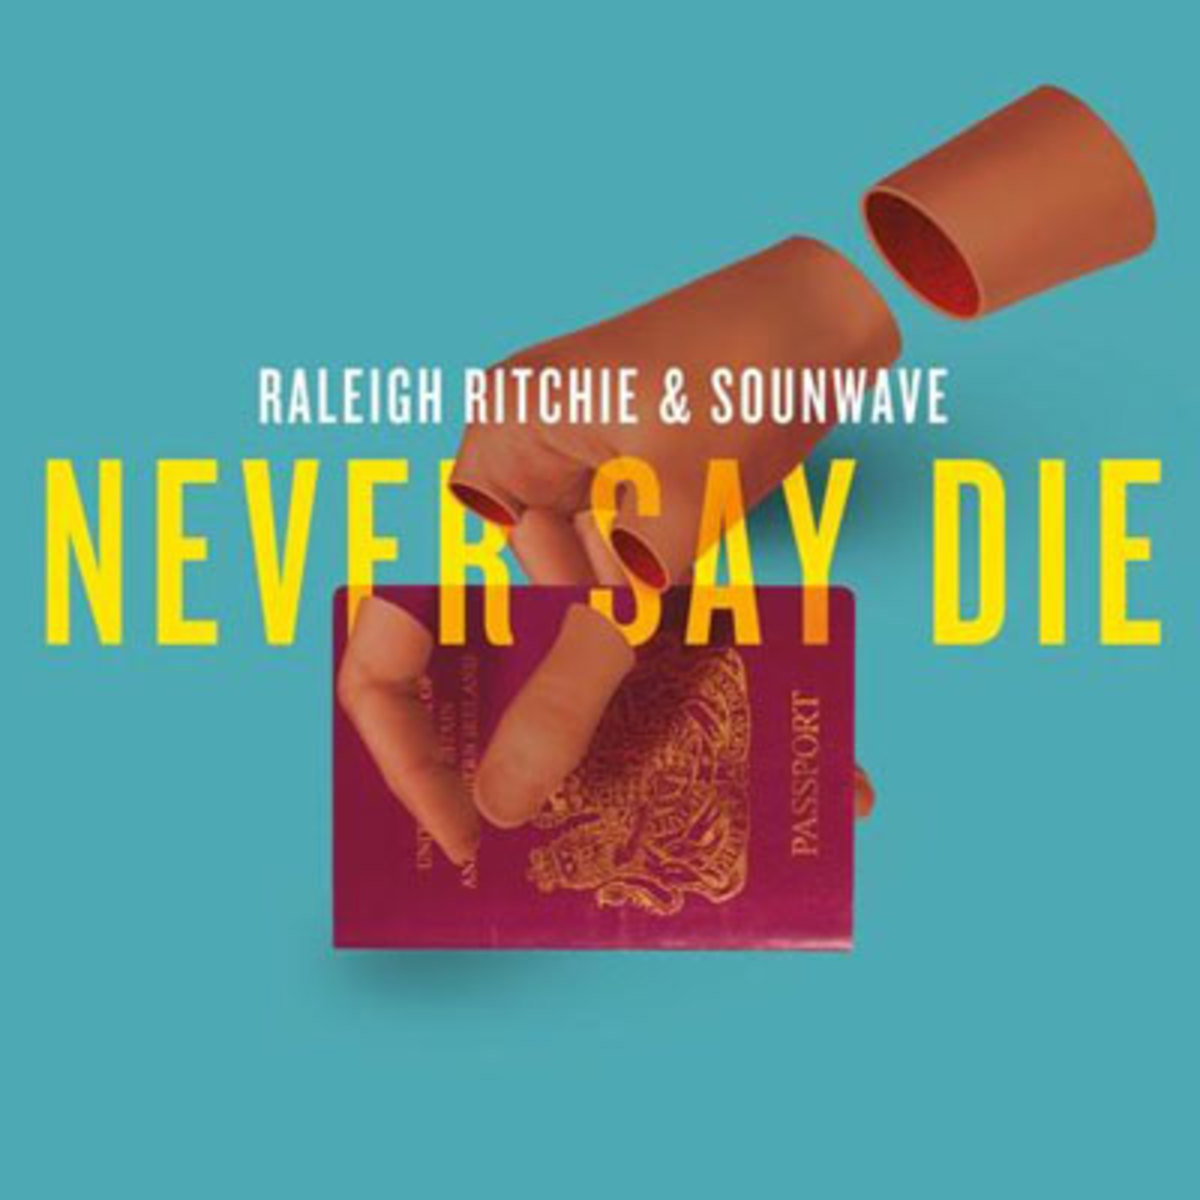 raleigh-ritchie-never-say-die.jpg